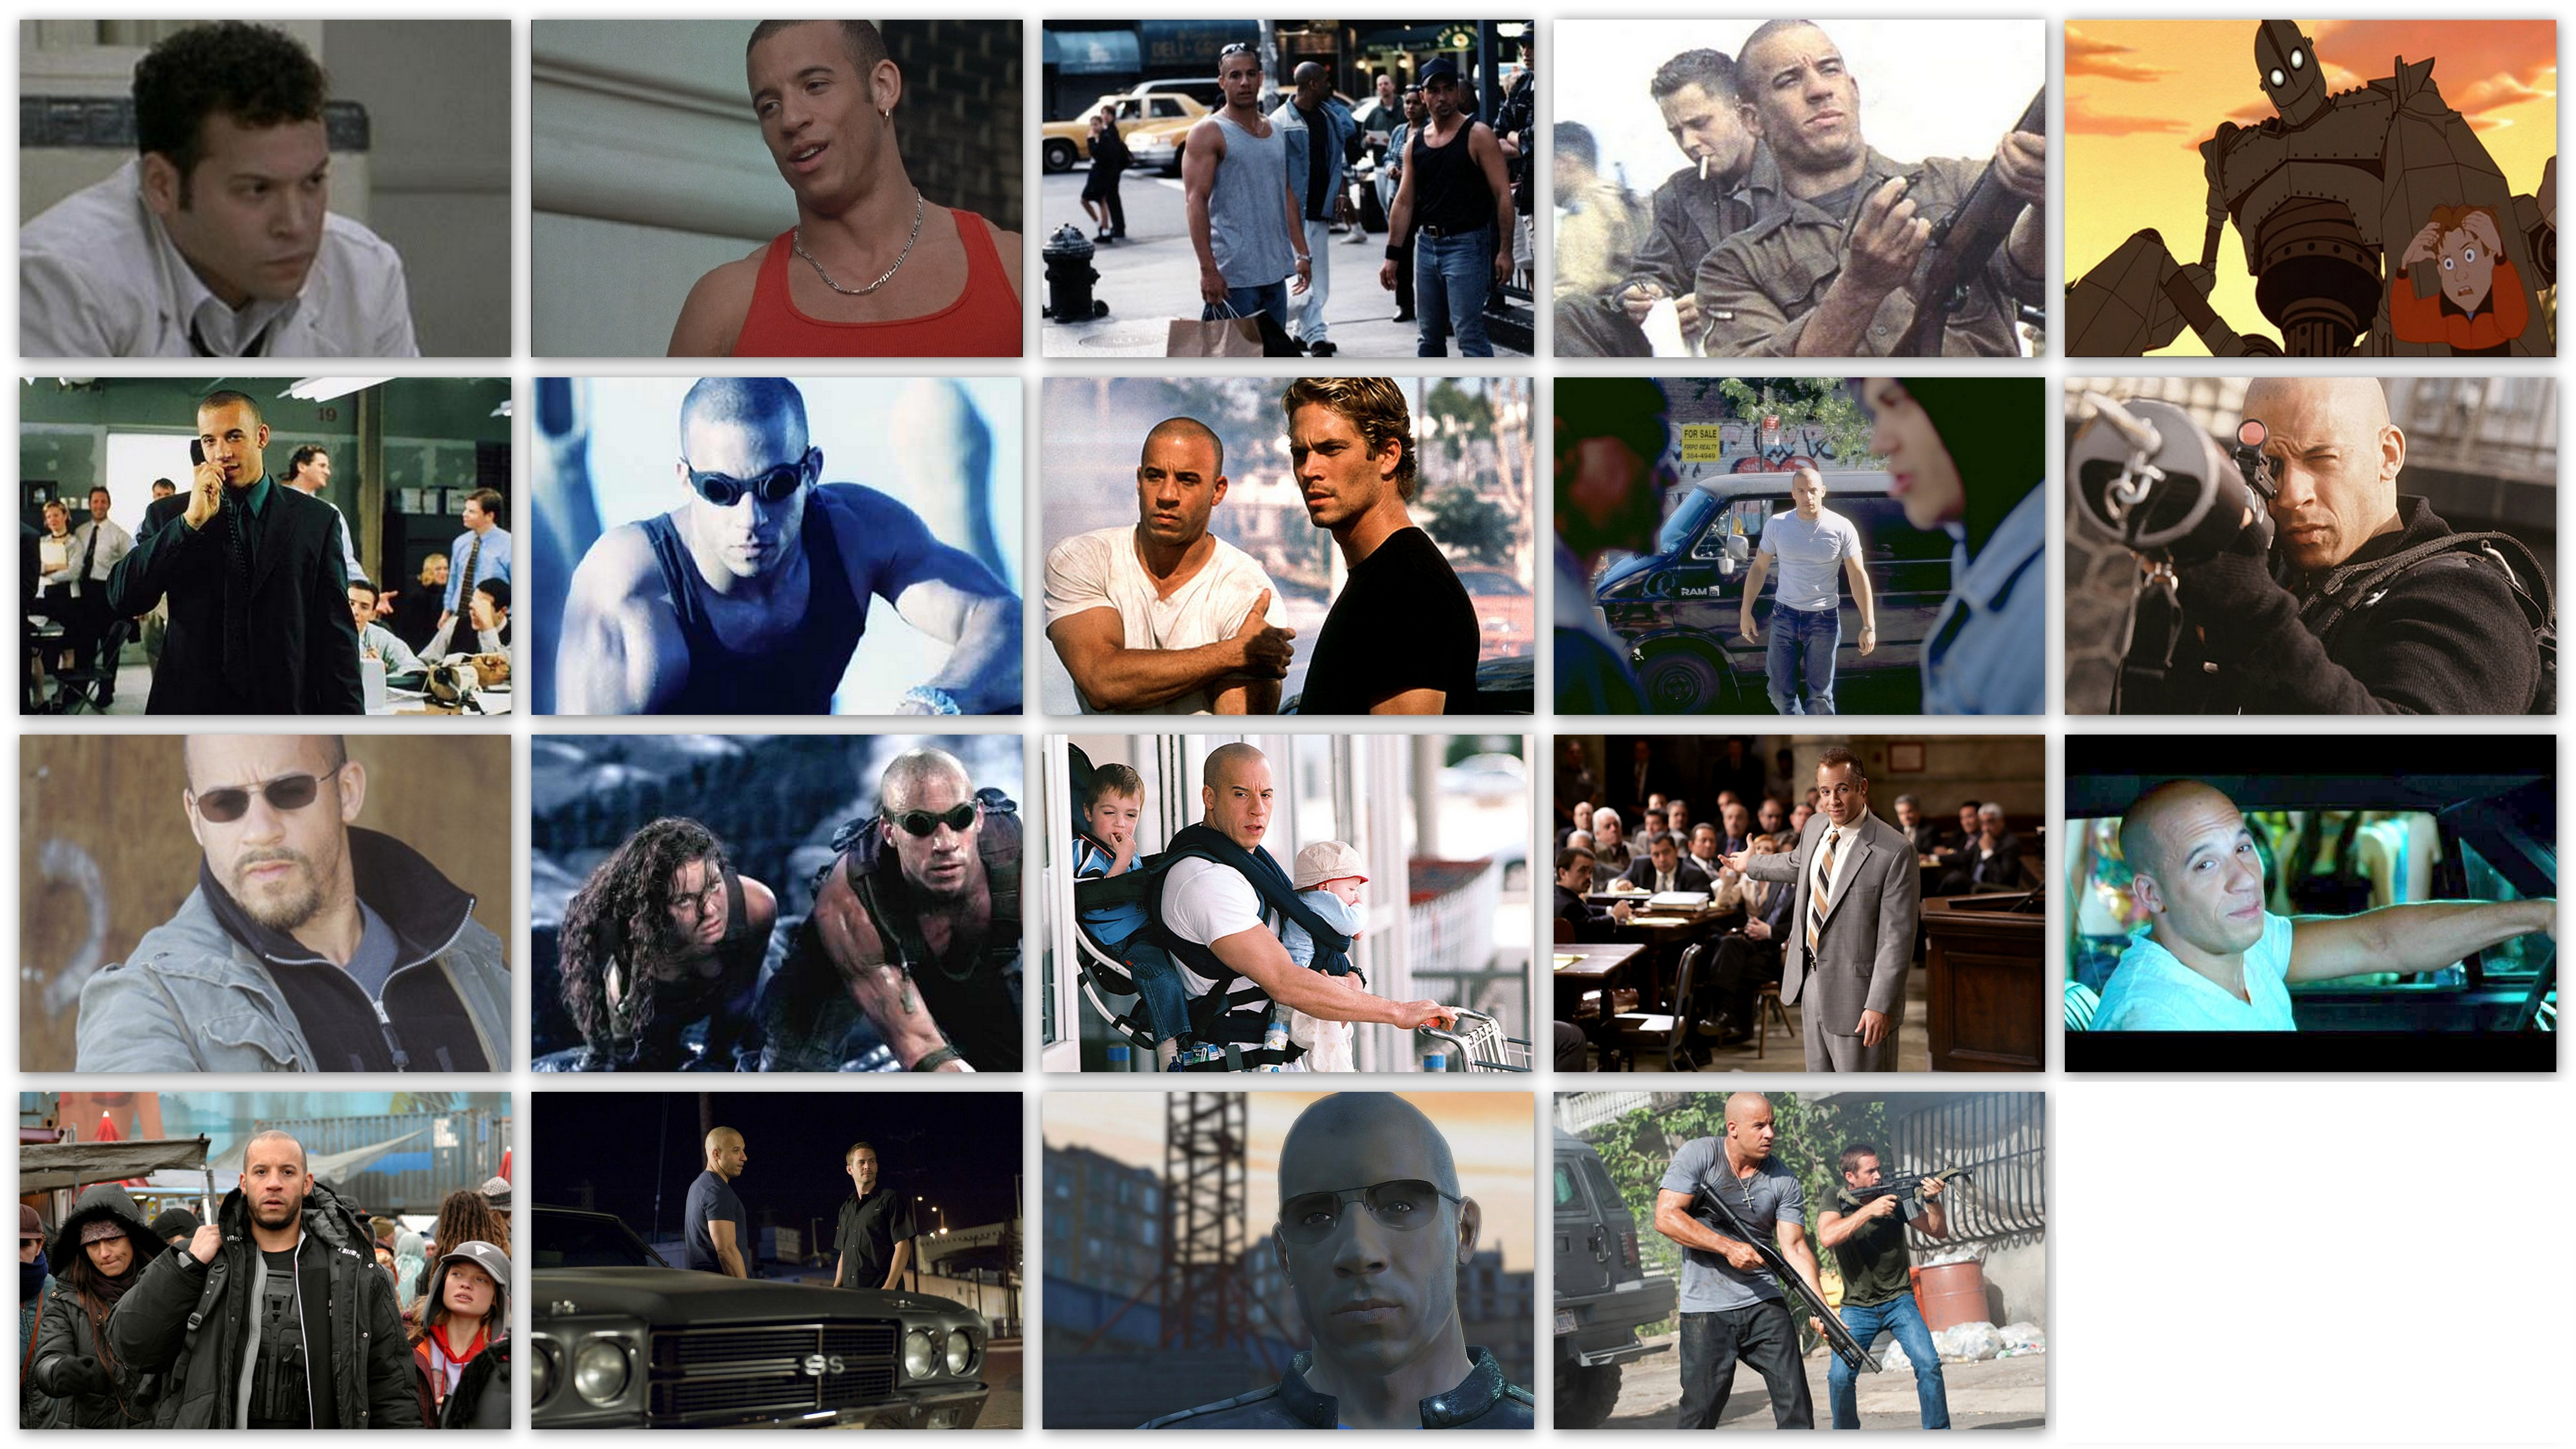 Overview of the roles of actor Vin Diesel in his movies